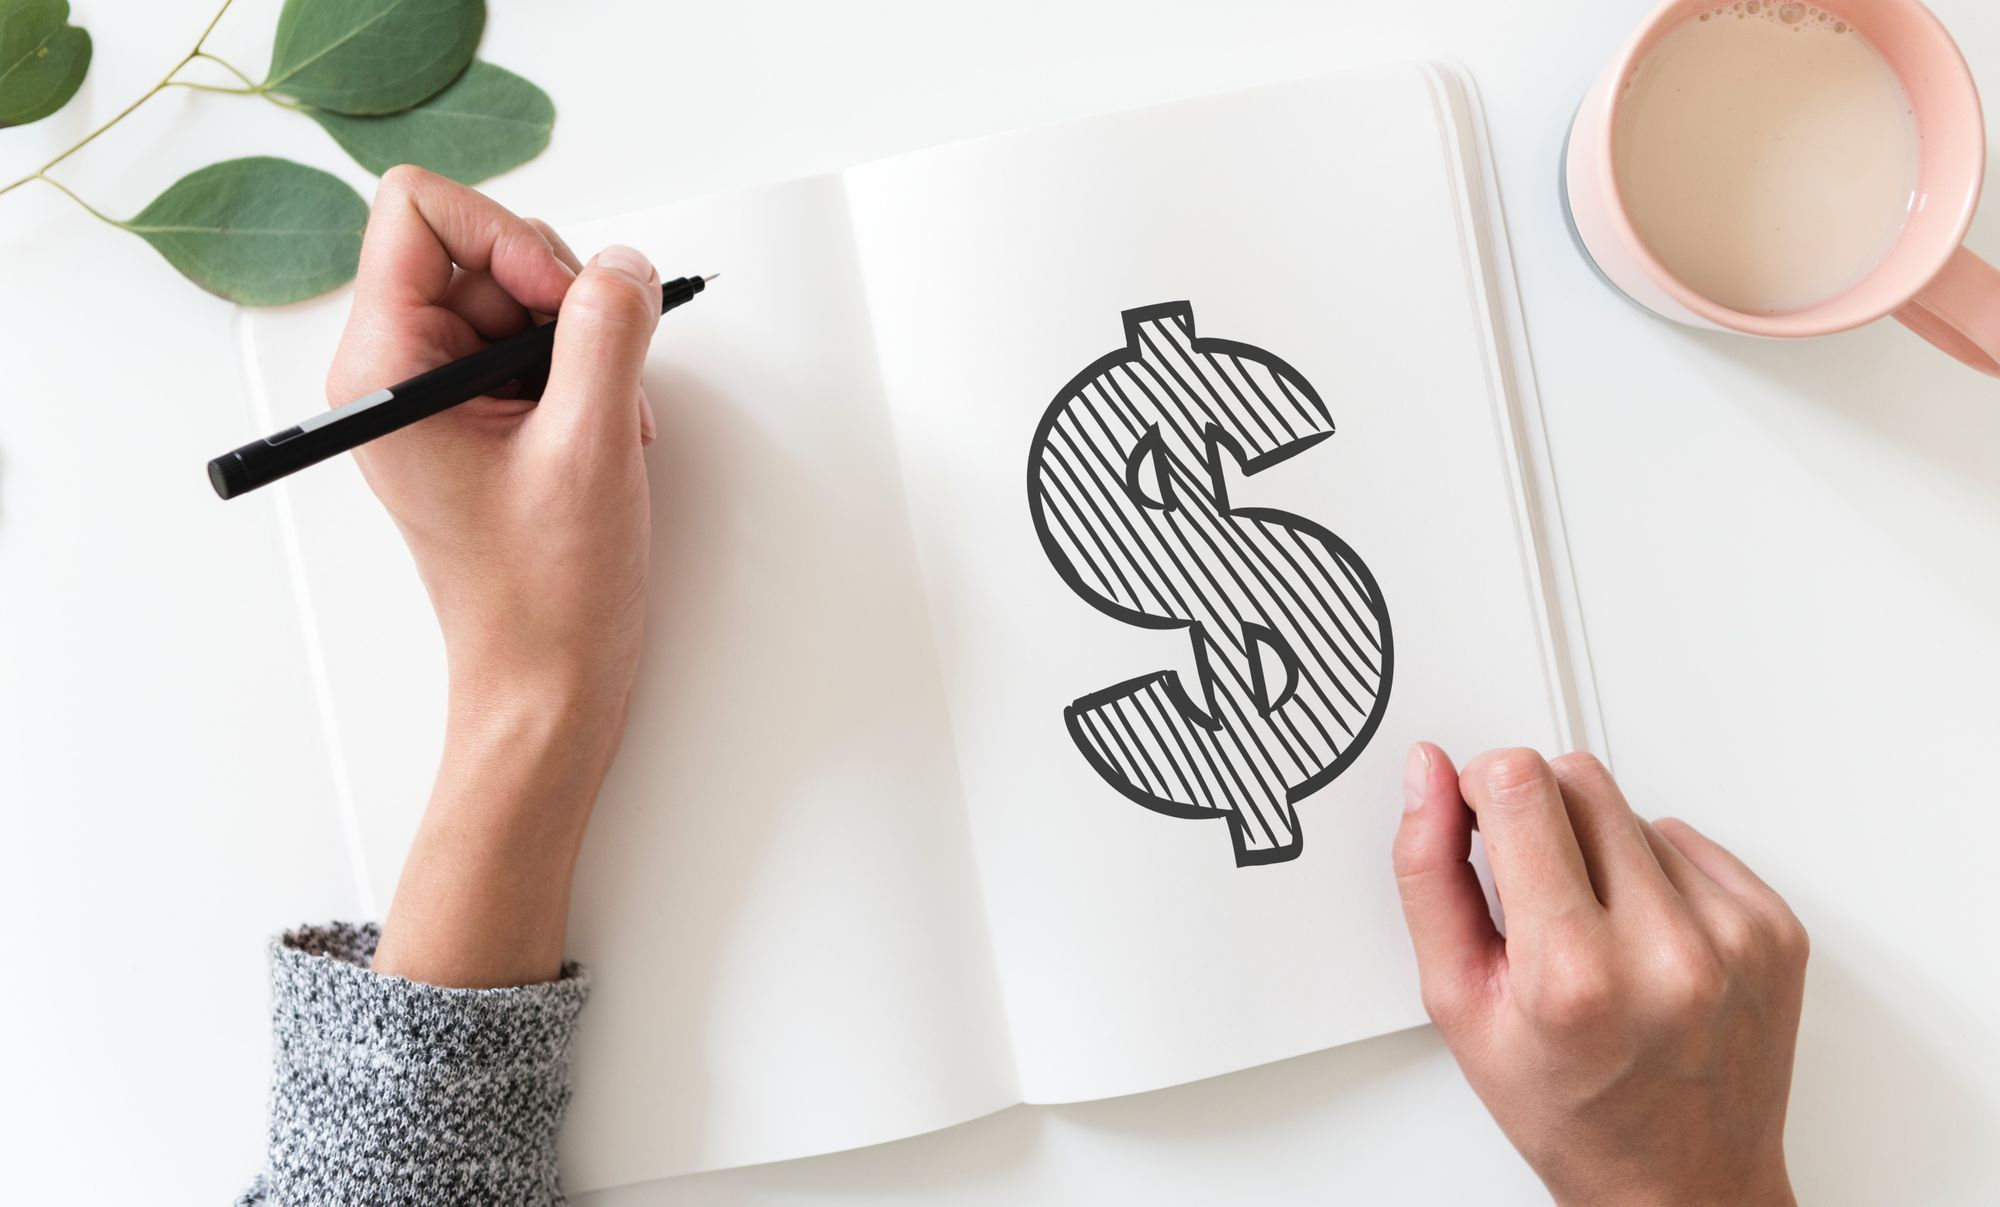 Ideas for making money on the side